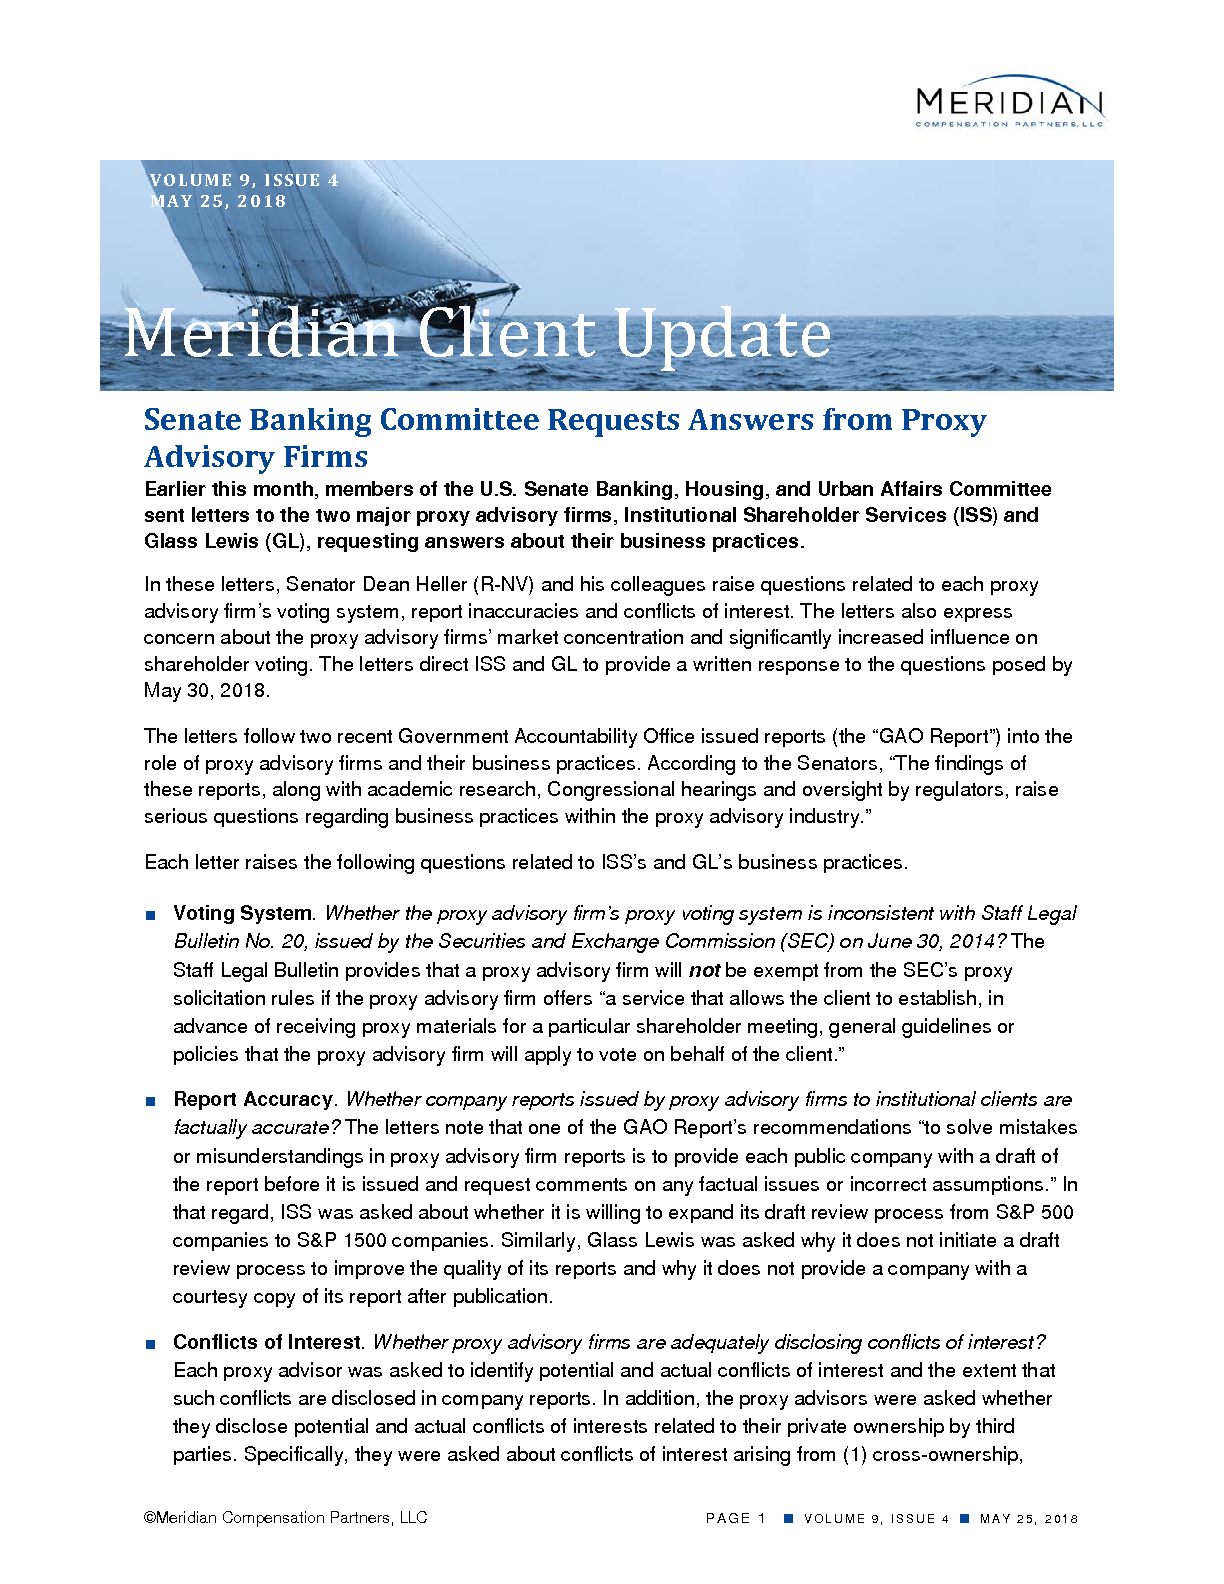 Senate Banking Committee Requests Answers from Proxy Advisory Firms (PDF)